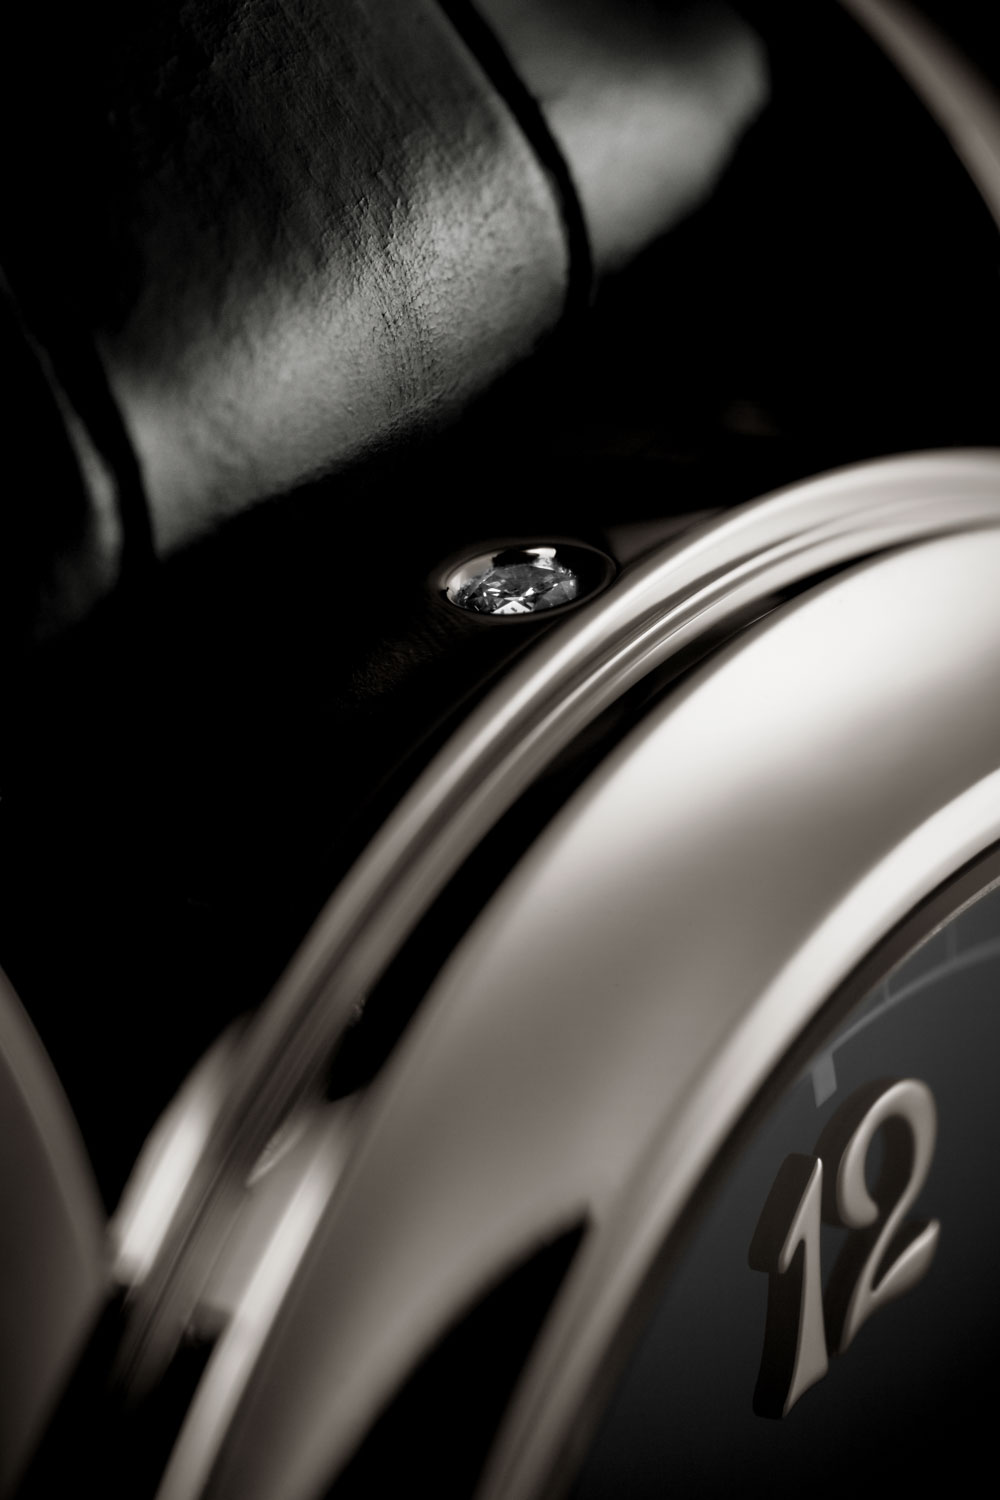 Patek Philippe typically places a small diamond on the side of the case at 6 o'clock to indicate that the watch concerned has a platinum case; in the case of the Patek Philippe Ref. 6301P Grande Sonnerie with the slide switch at 6 o'clock the diamond is now placed at 12 o'clock